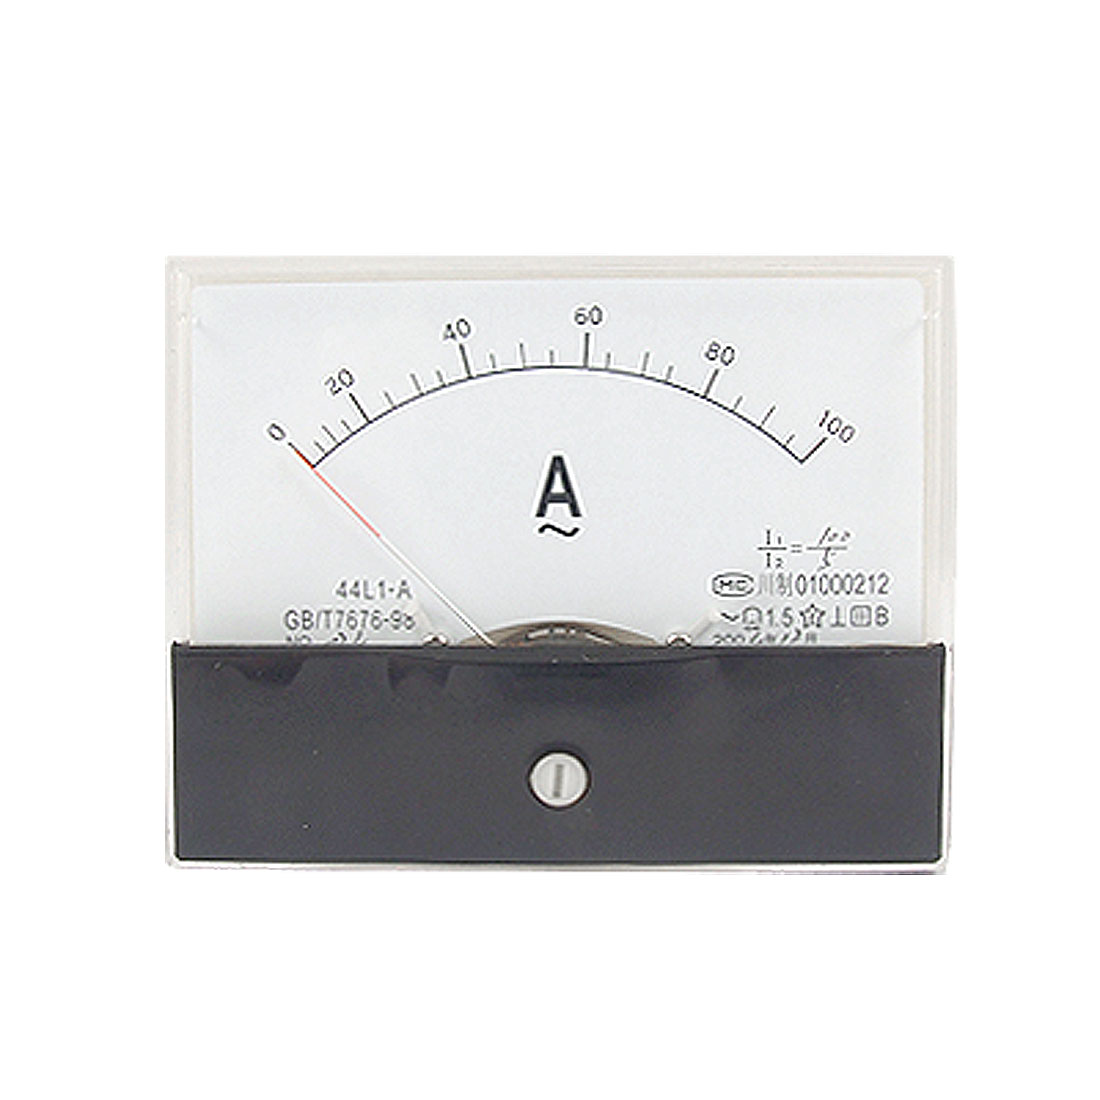 Panel Mount AC 0-100A Current Meter Measure Tool 44L1-A